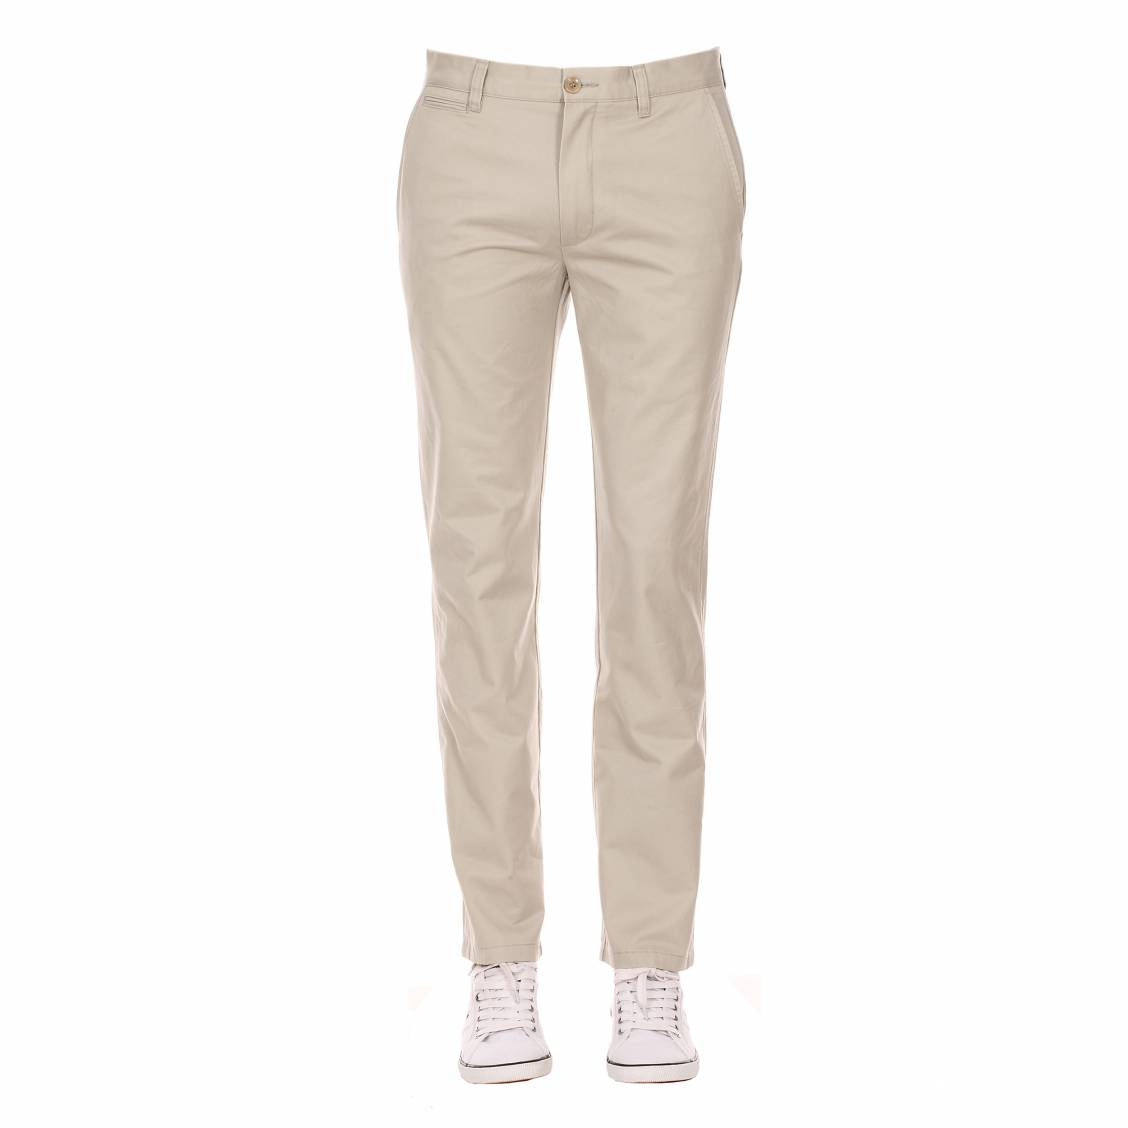 Pantalon chino Dockers beige clair coupe slim